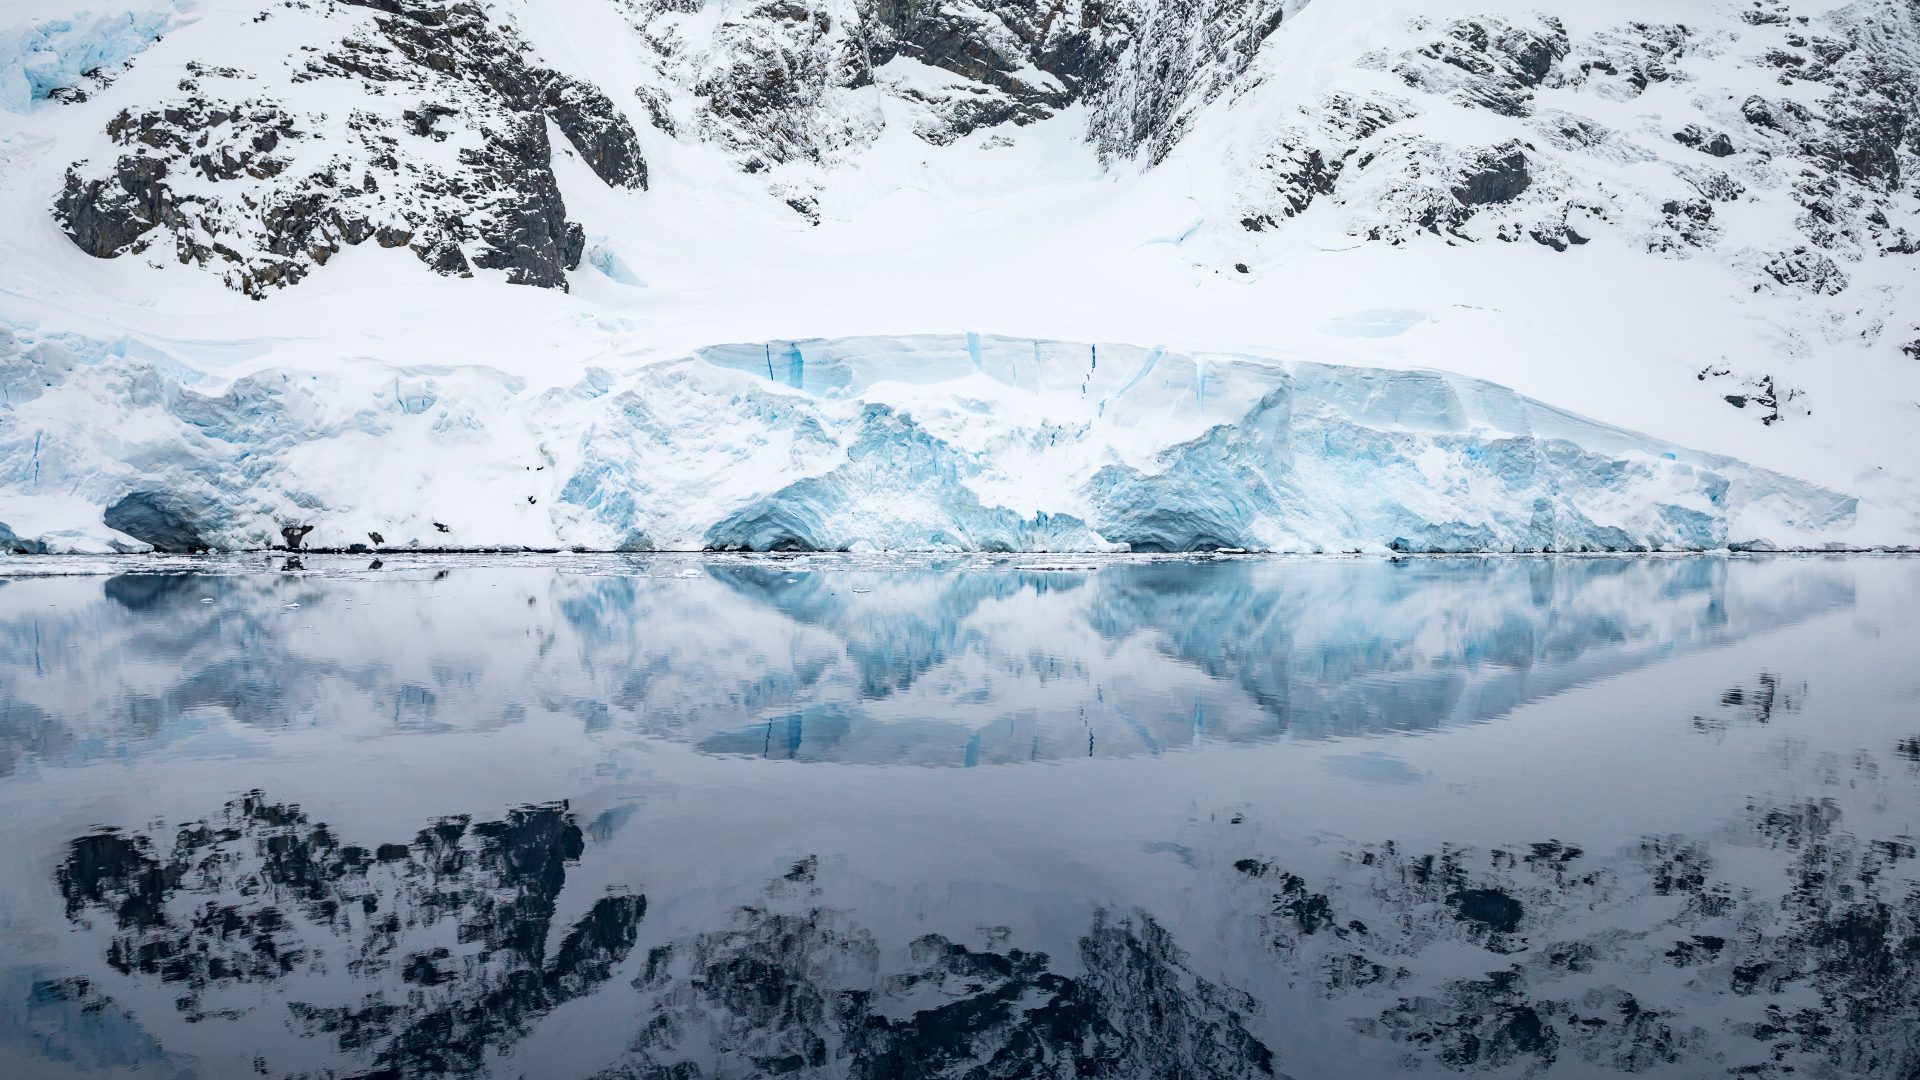 The beautiful reflections of an iceberg in the The Lemaire Channel., Antarctica.